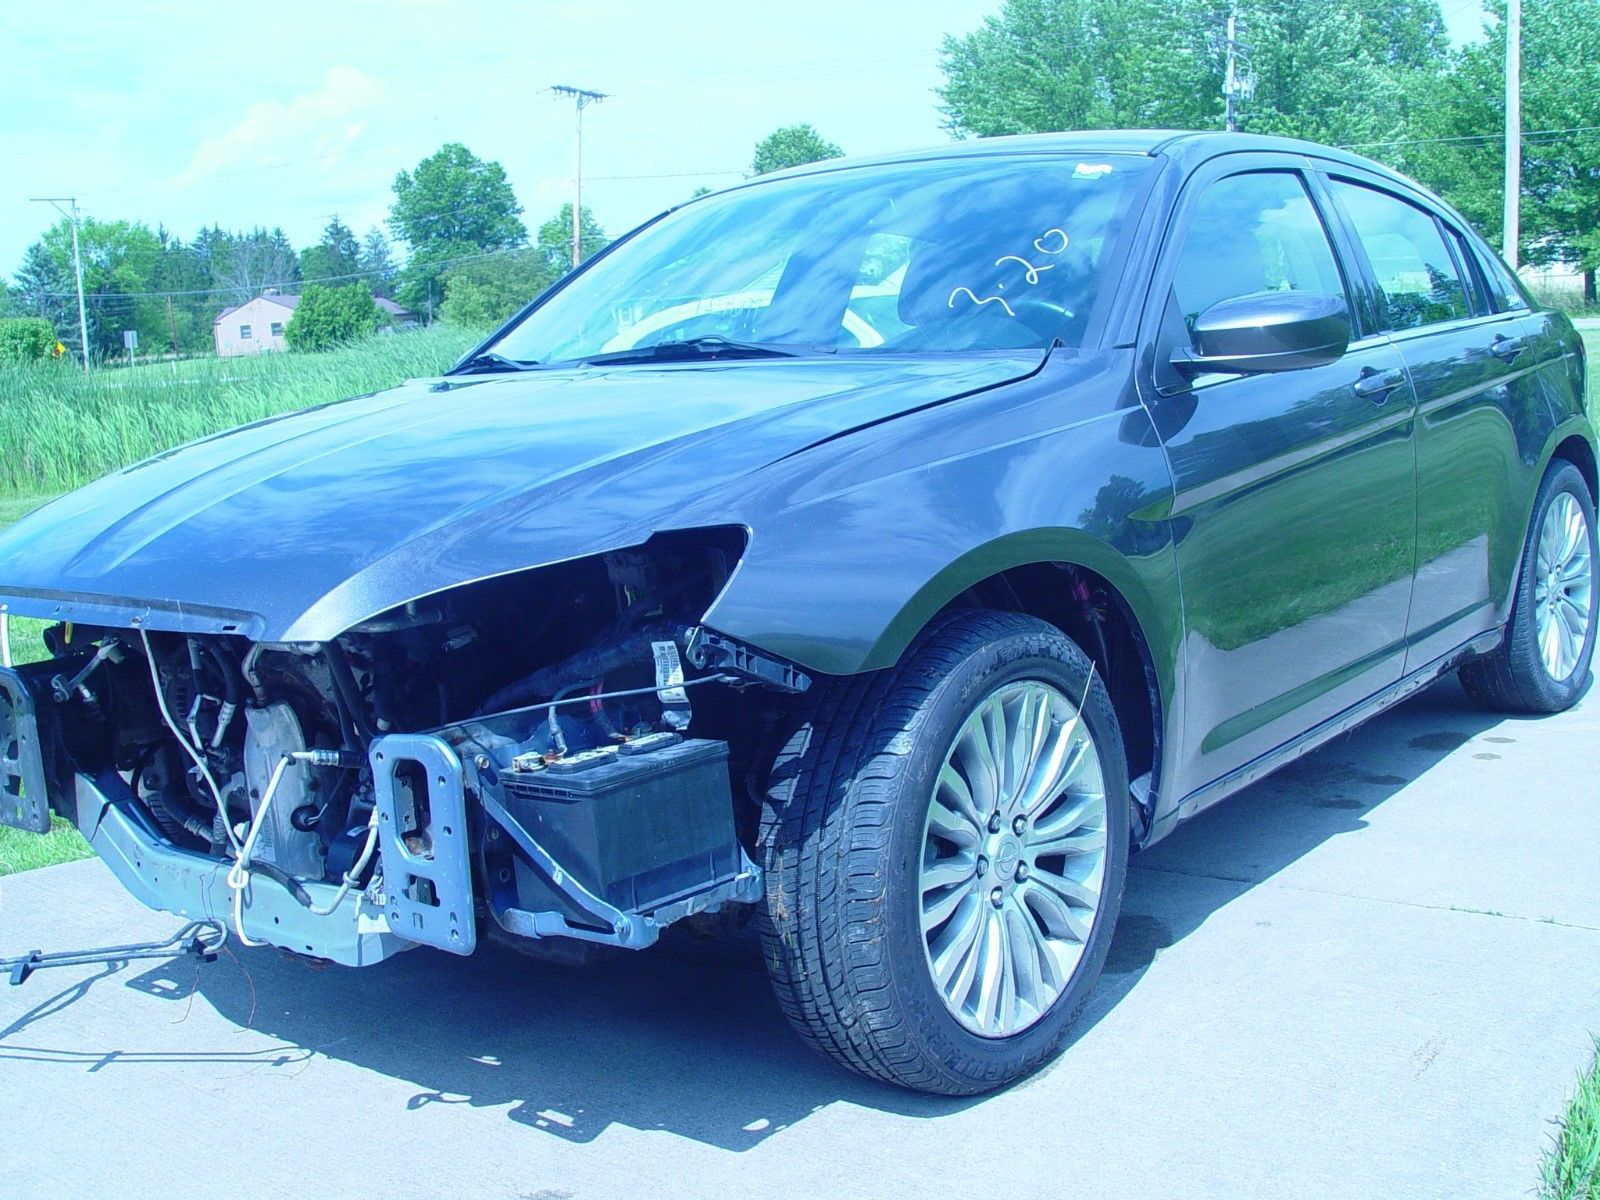 Easy fix 2014 Chrysler 200 Series repairable for sale